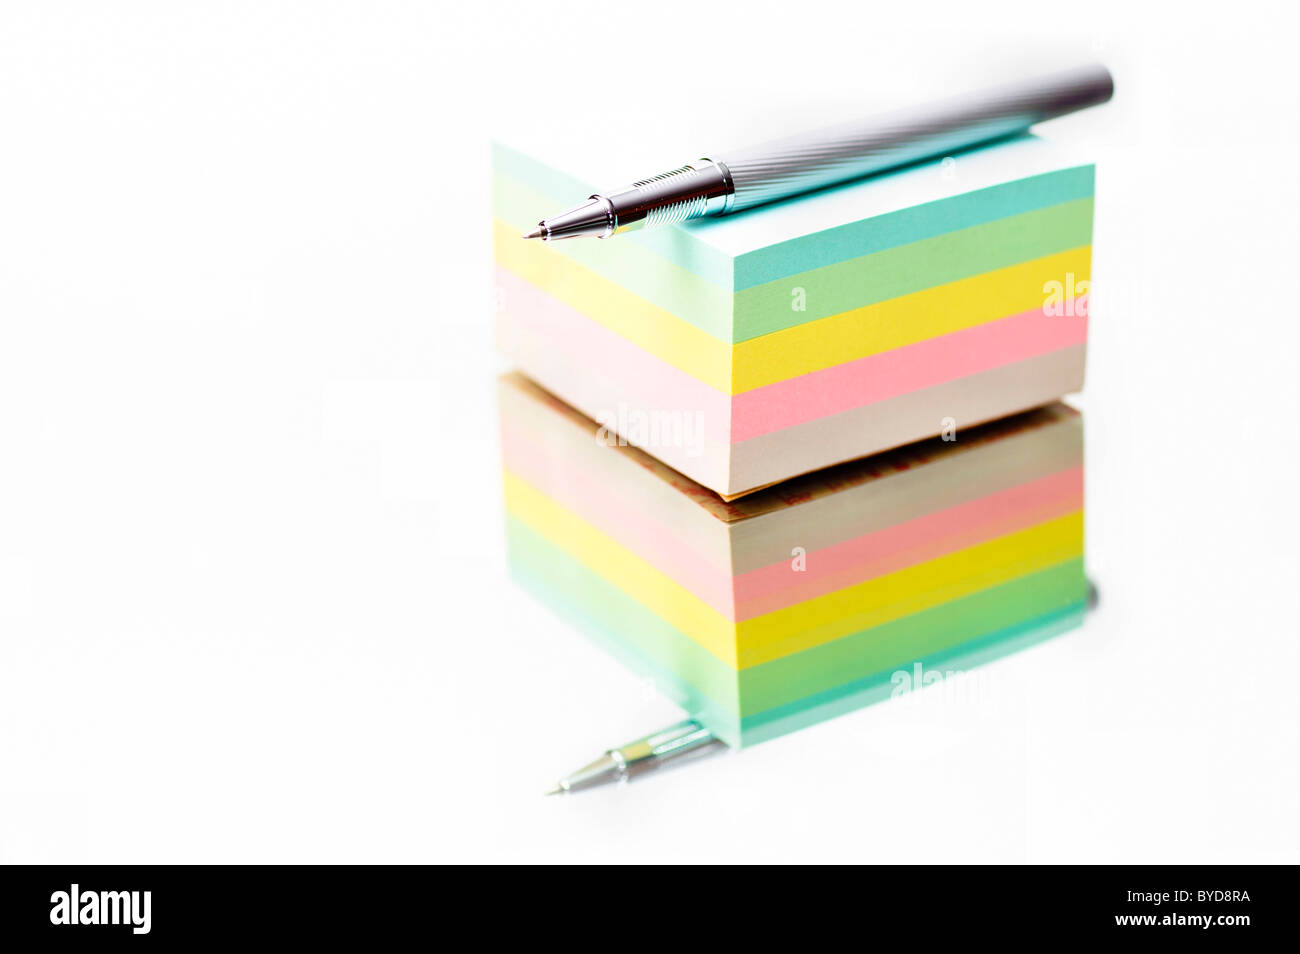 Pen lying on a colourful notepad - Stock Image